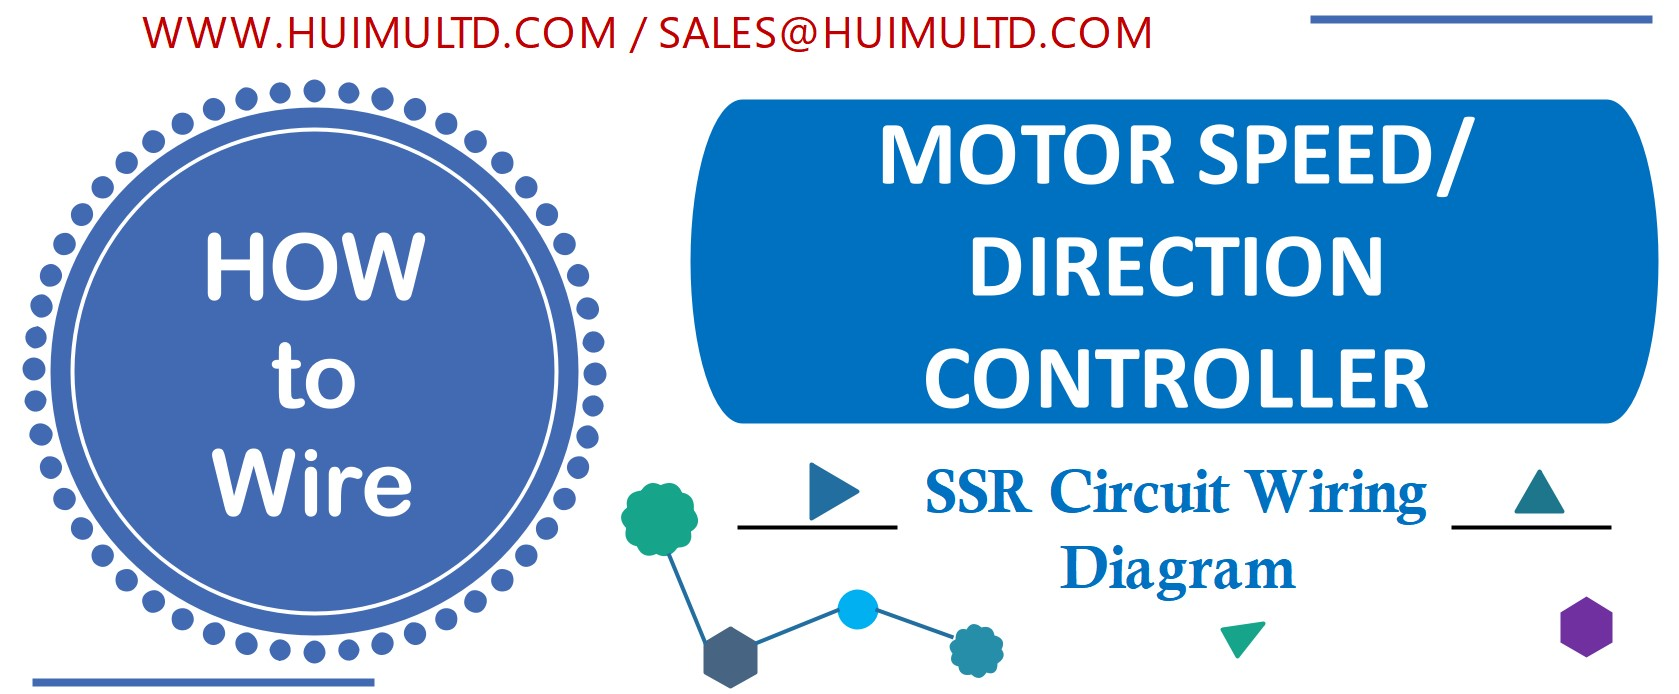 hight resolution of motor speed or direction controller solid state relay wiring diagram huimultd